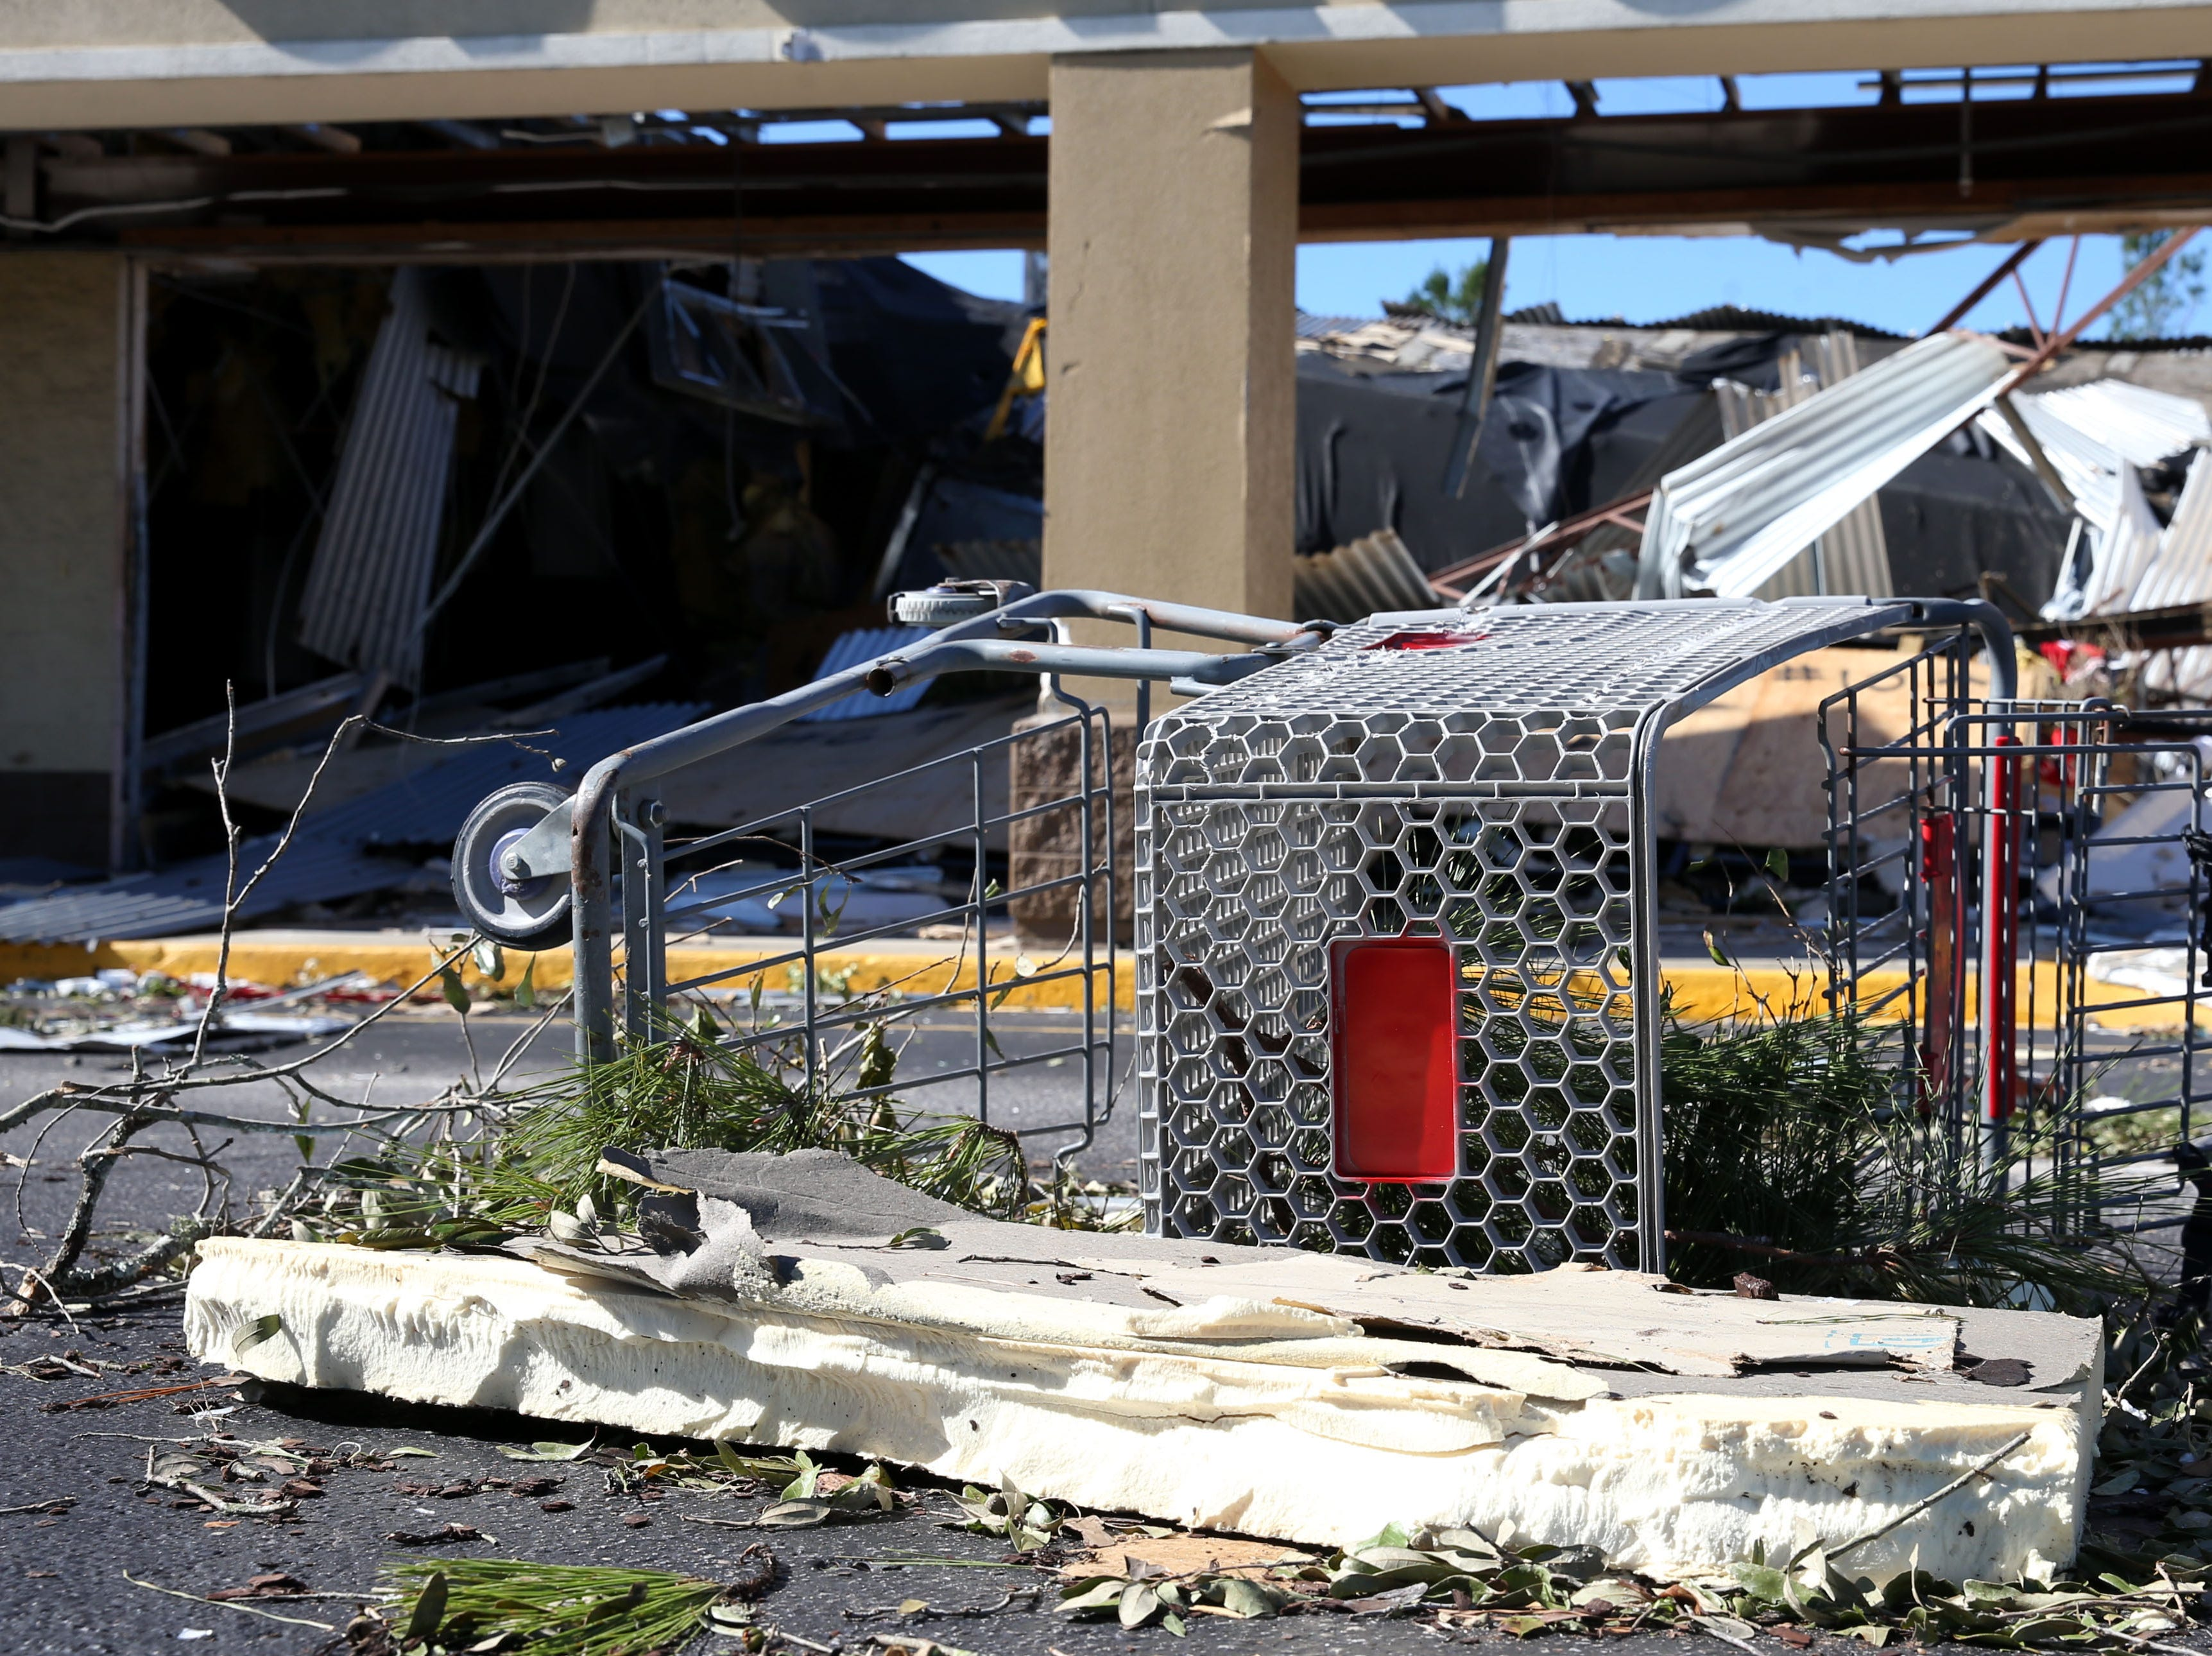 A displaced shopping cart rests outside of the Oak Station shopping plaza in Marianna, Fla. after Hurricane Michael ripped through the panhandle on Wednesday, Oct. 10, 2018. The plaza roof was torn off due to the strong winds and the windows were shattered by flying debris. A team of security  guards were placed outside the plaza to prevent looters from stealing merchandise, Friday Oct. 12, 2018.